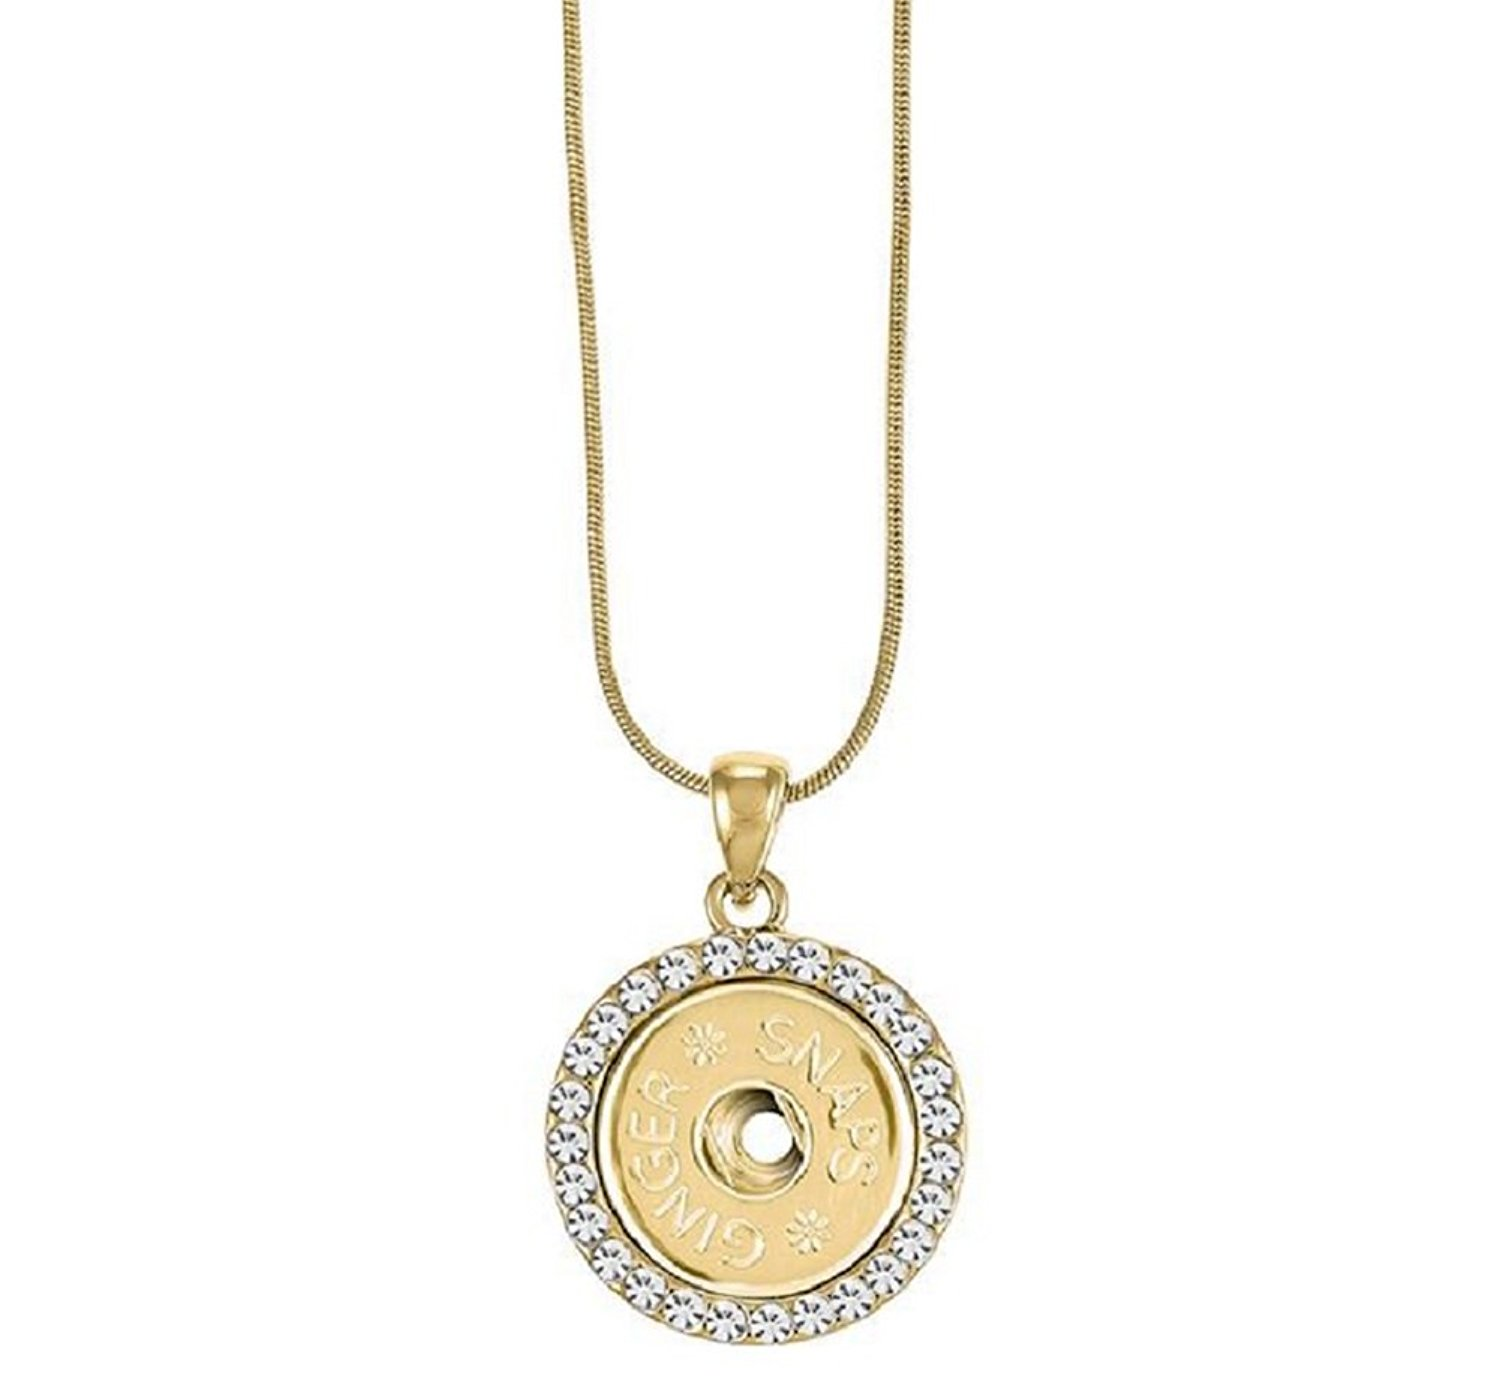 Ginger Snaps (Simulated) Gold Bling Necklace SN95-70 (Standard Size) Interchangeable Jewelry Accessory